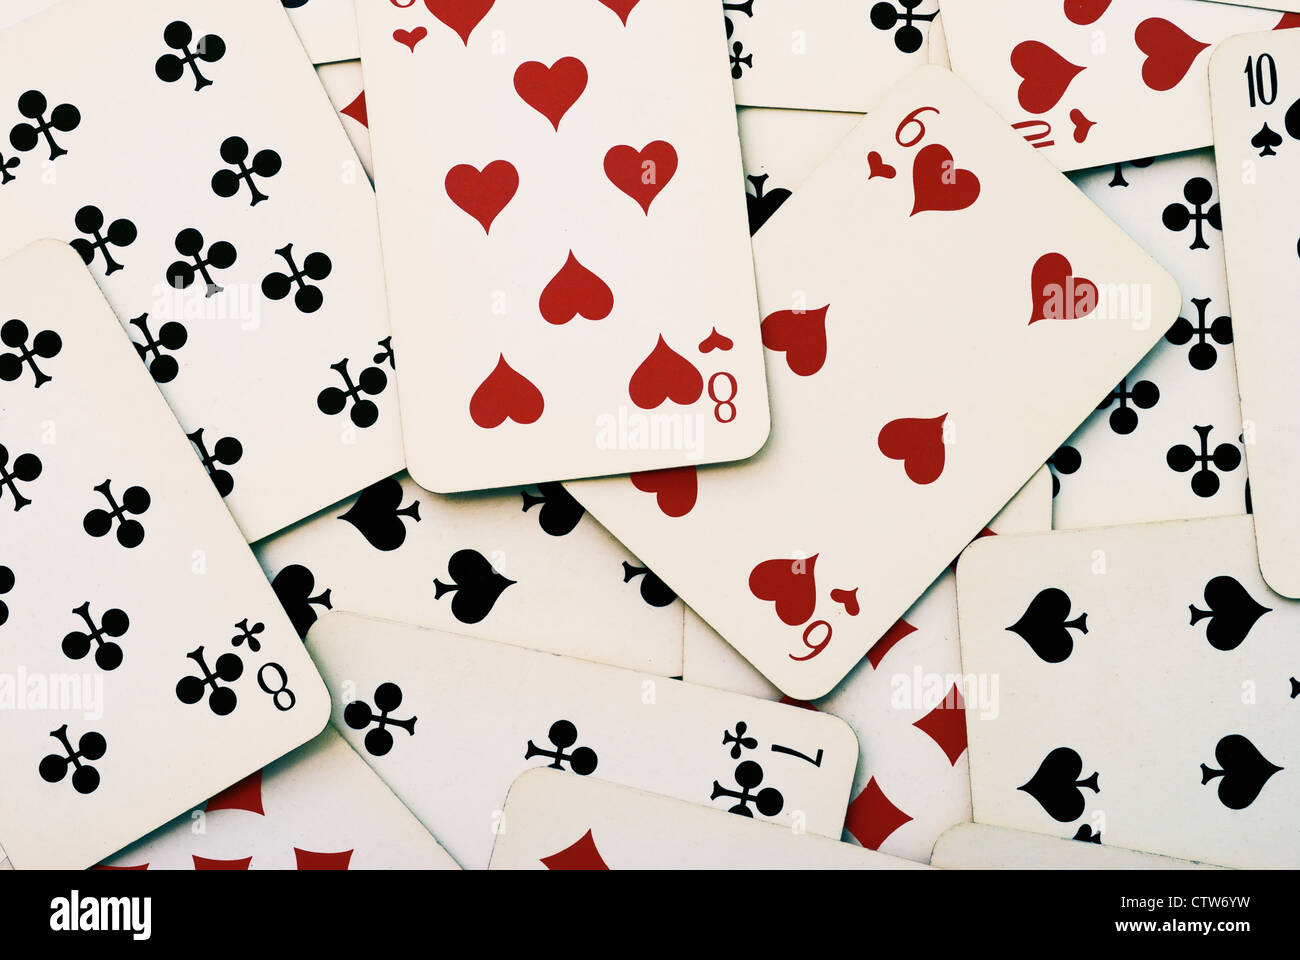 Lot of dusty old playing cards - Stock Image